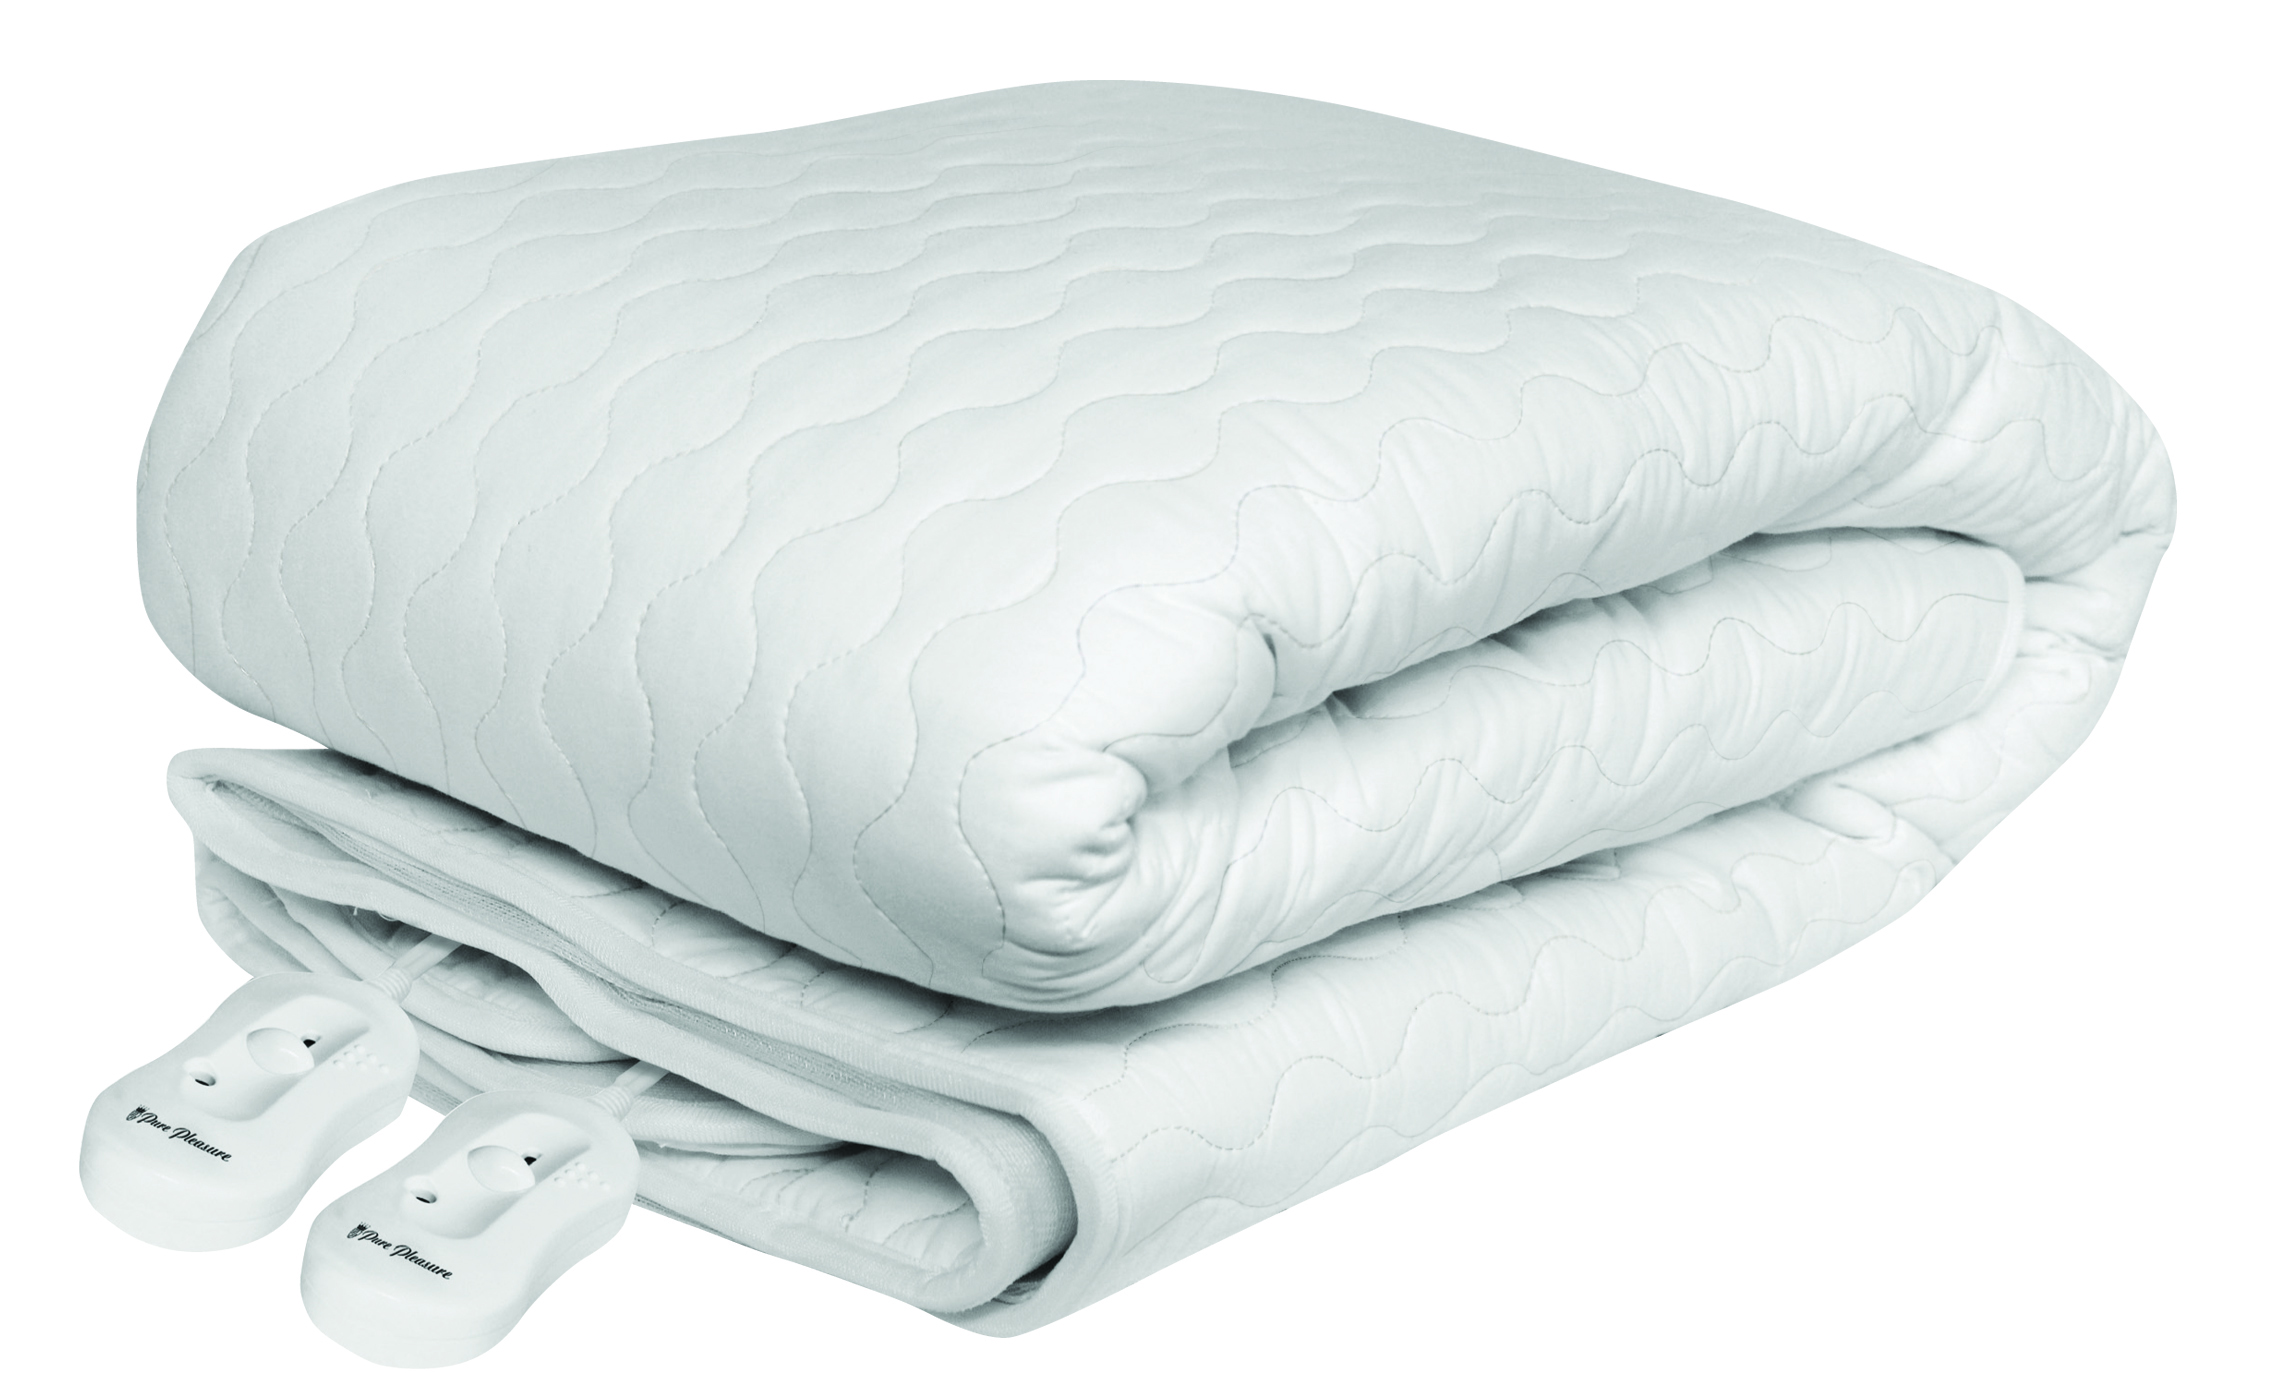 Pure Pleasure - King Cotton Quilt W/ Skirt Fitted Electric Blanket 183X188